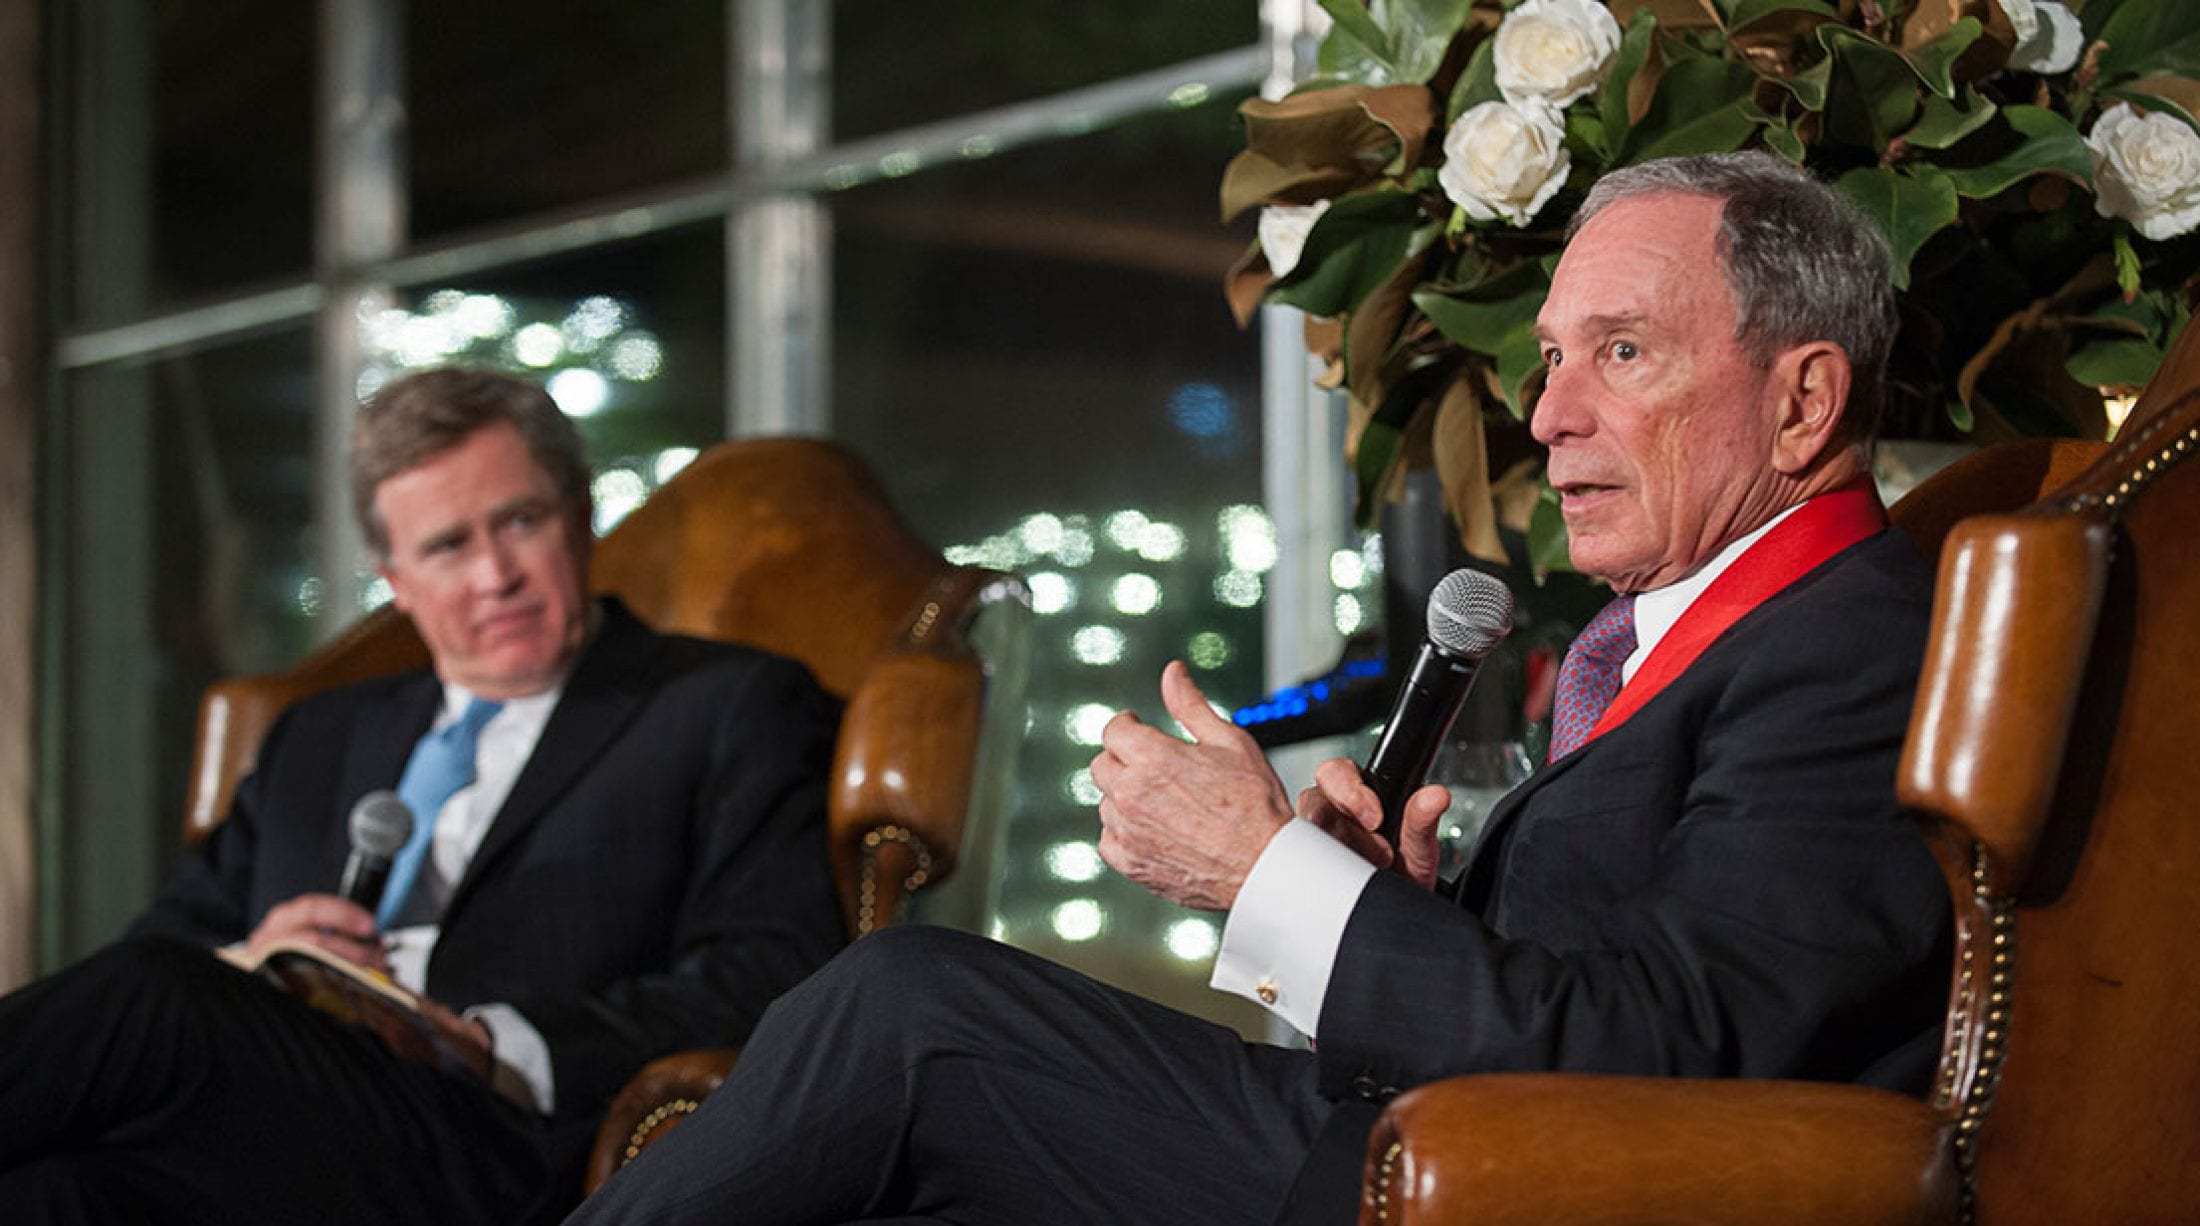 Michael Bloomberg received the Medal of Honors.